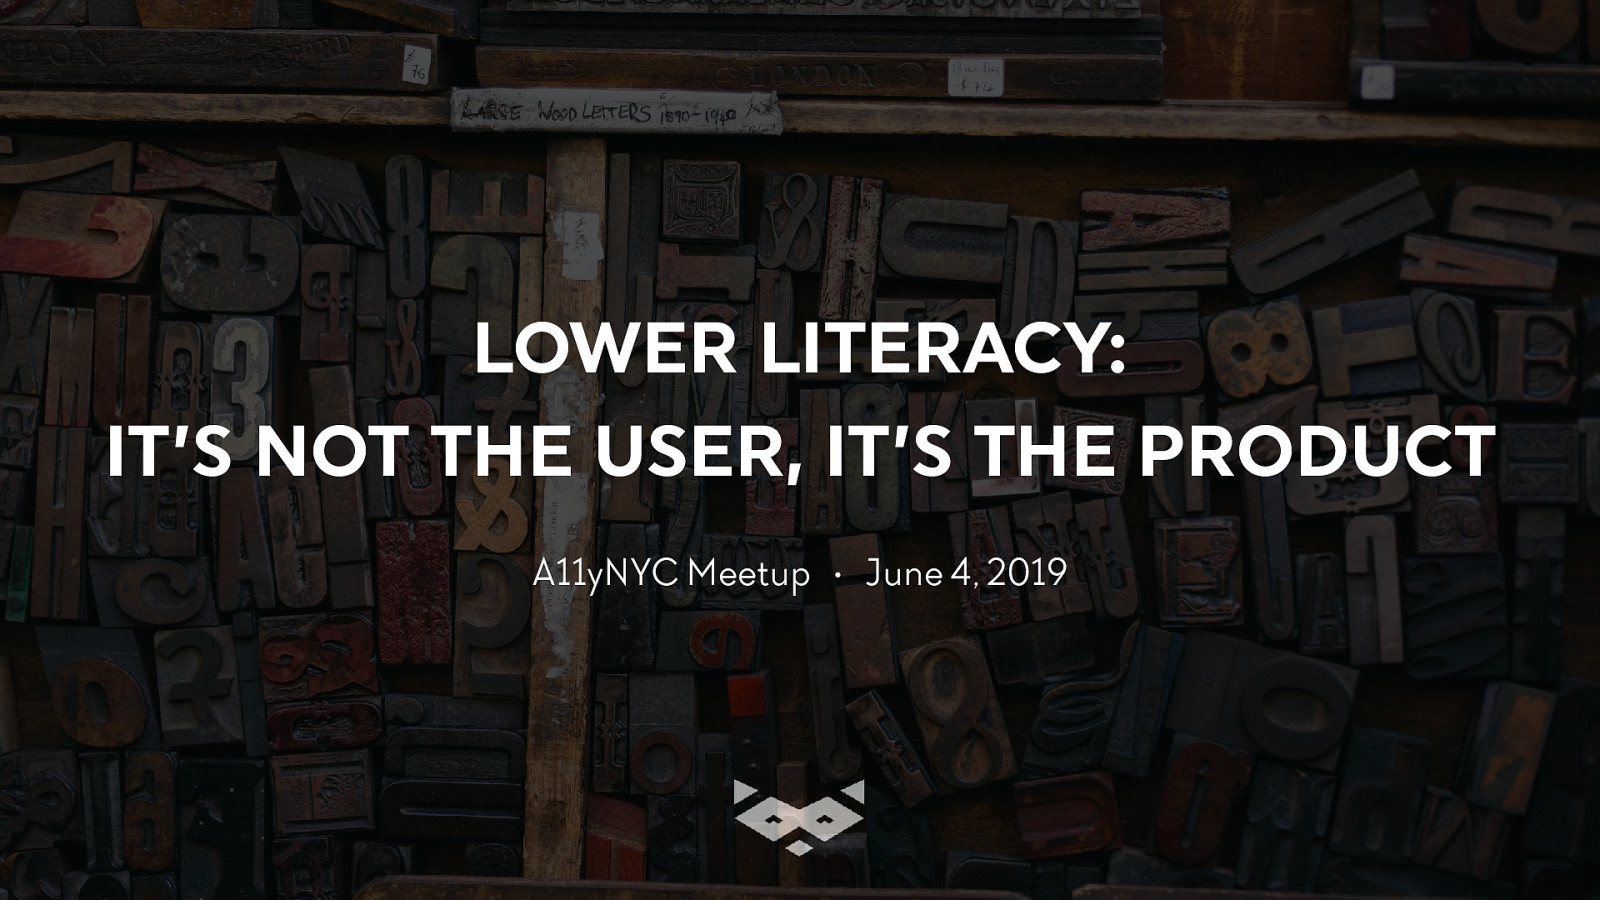 Lower literacy: it's not the user, it's the product!